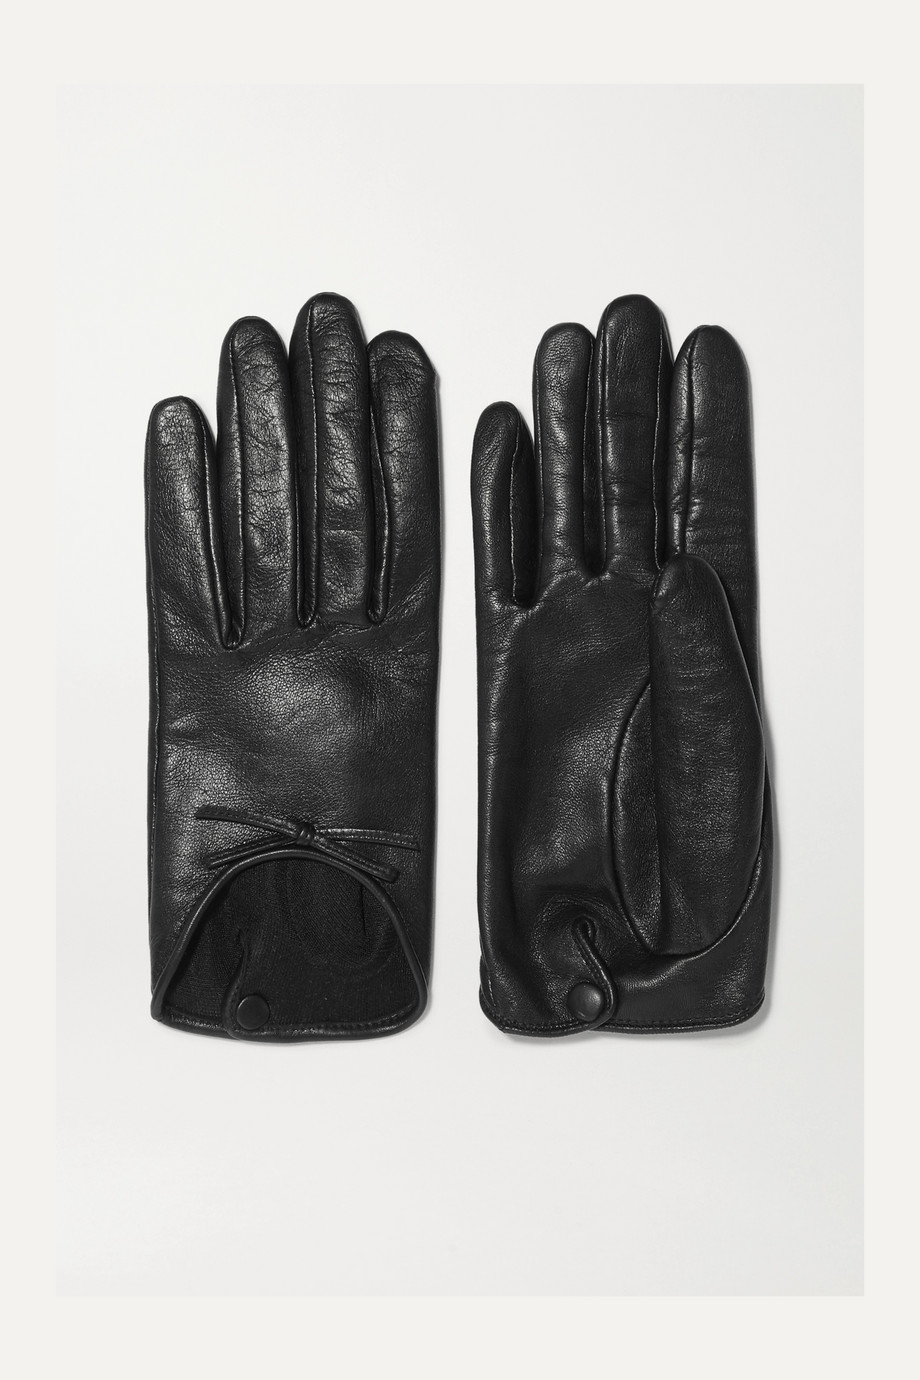 Agnelle Josie bow-embellished leather gloves